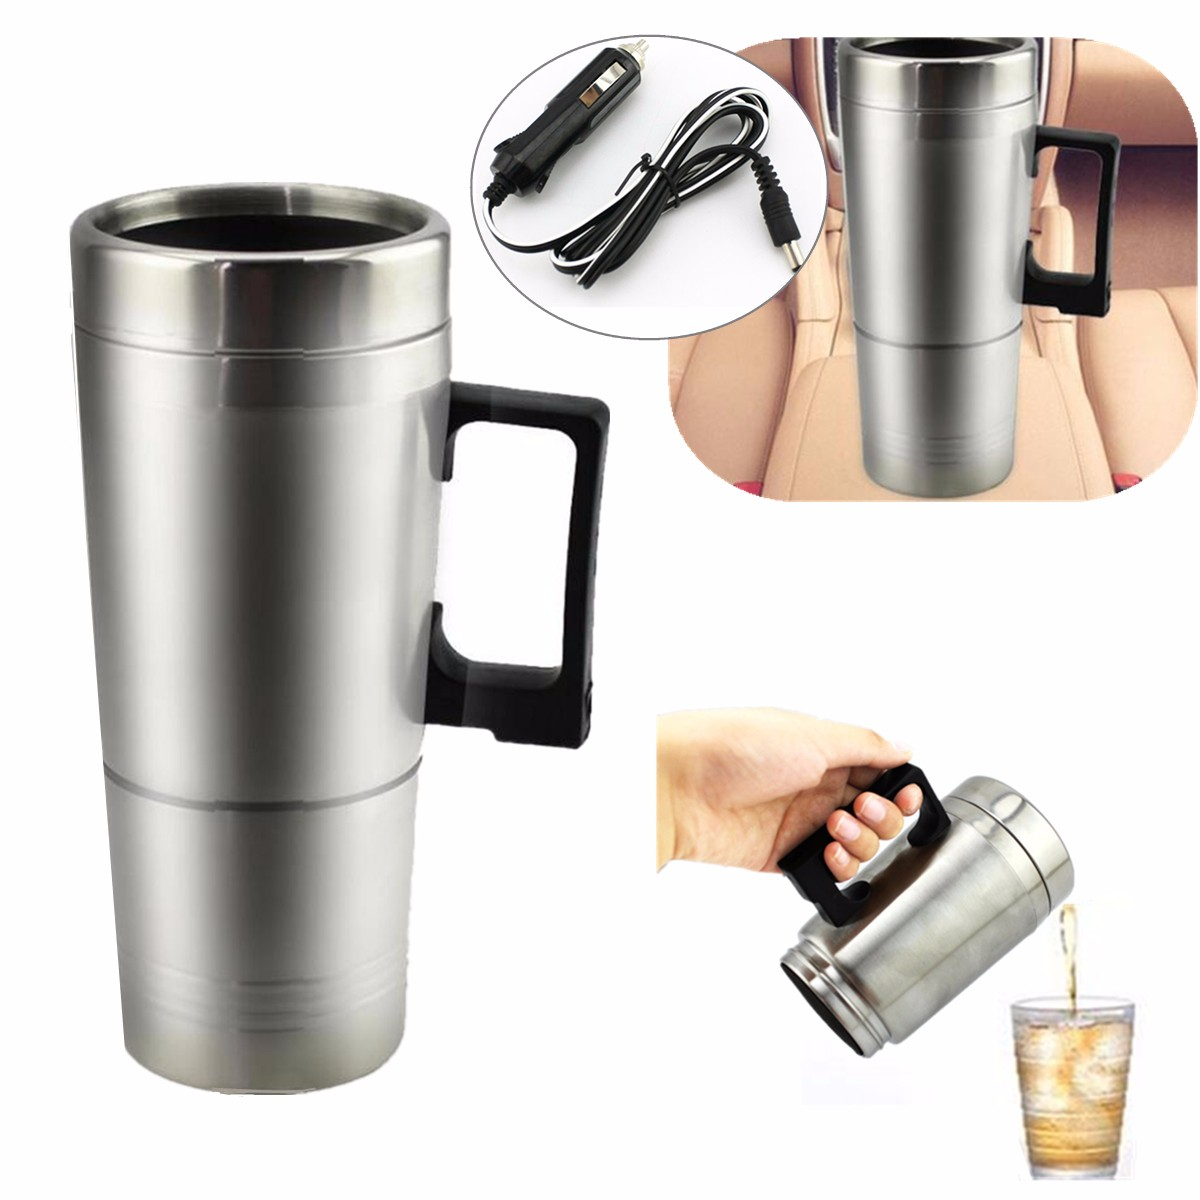 12v Car Heating Stainless Steel Cup Water Bottle Water Tea